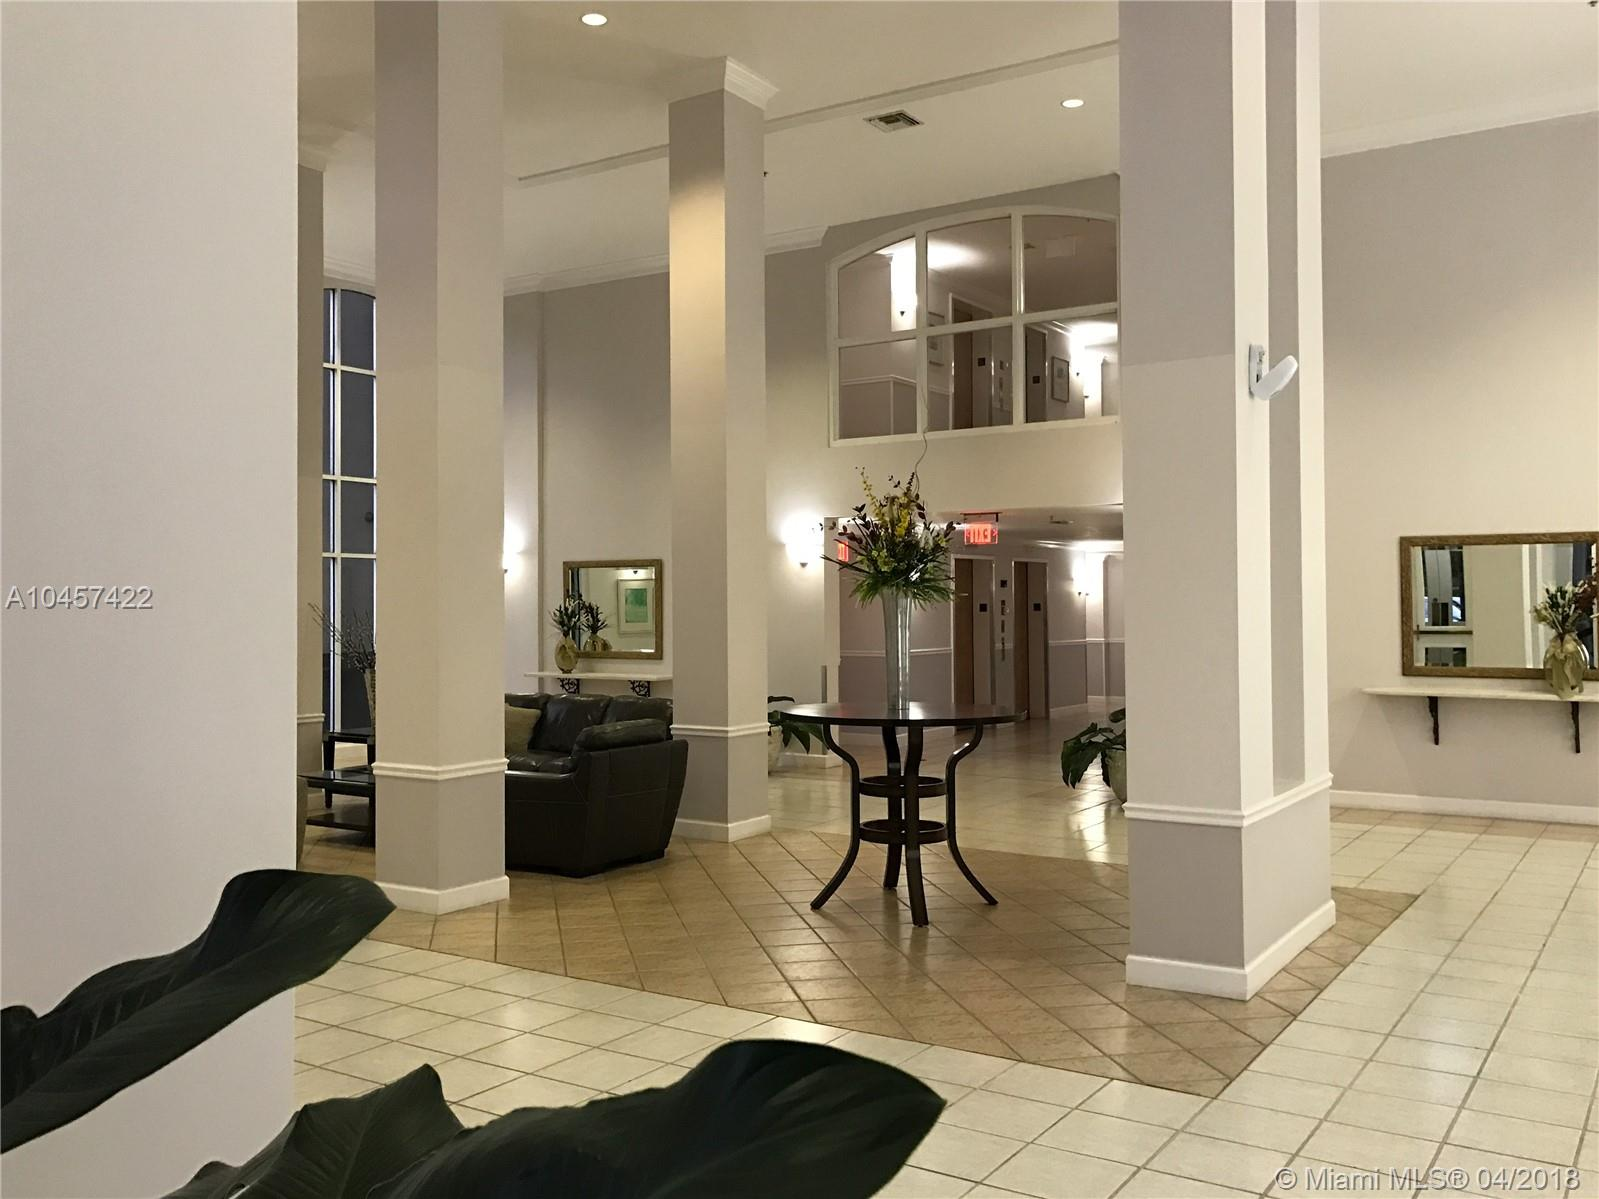 9725 NW 52nd St #116 For Sale A10457422, FL